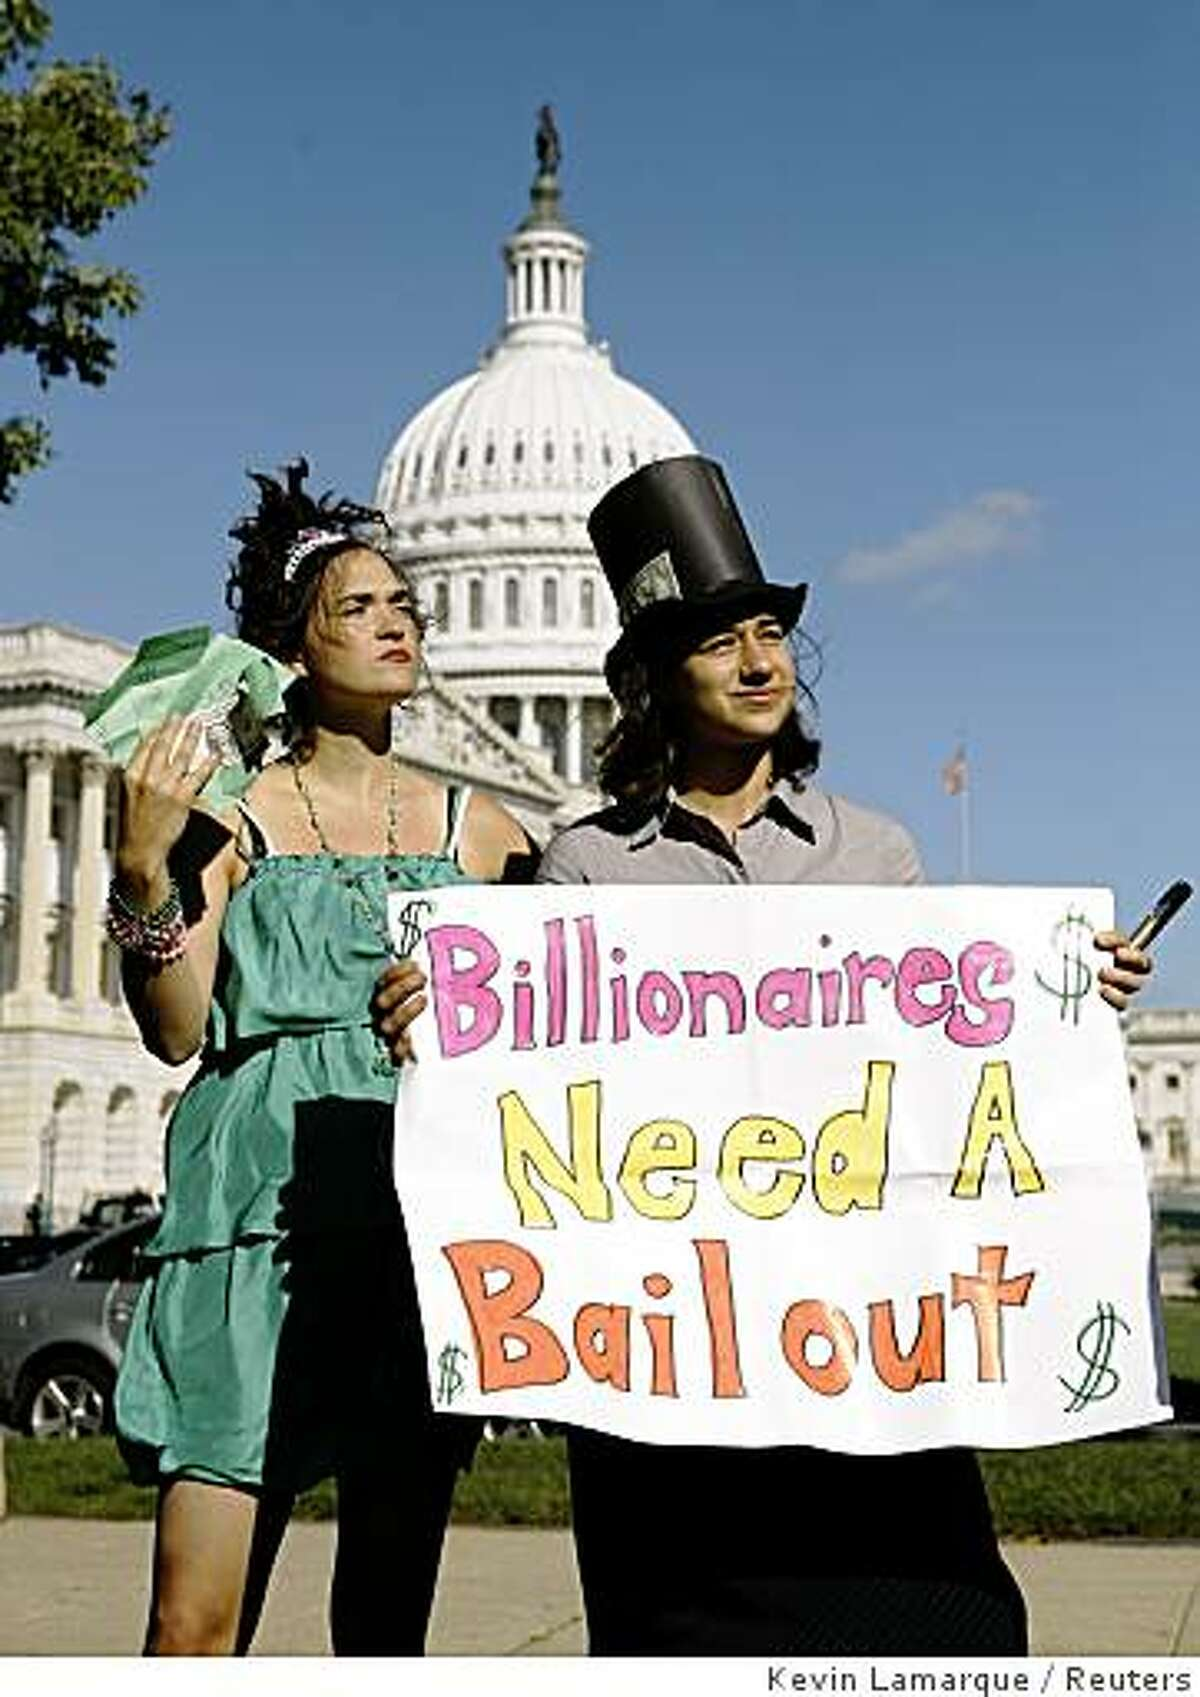 Protesters perform a skit mocking the economic bailout plan in front of the Capitol building in Washington October 2, 2008. The House is expected to vote Friday on the $700 billion financial rescue plan which was passed by the Senate last night. REUTERS/Kevin Lamarque (UNITED STATES)